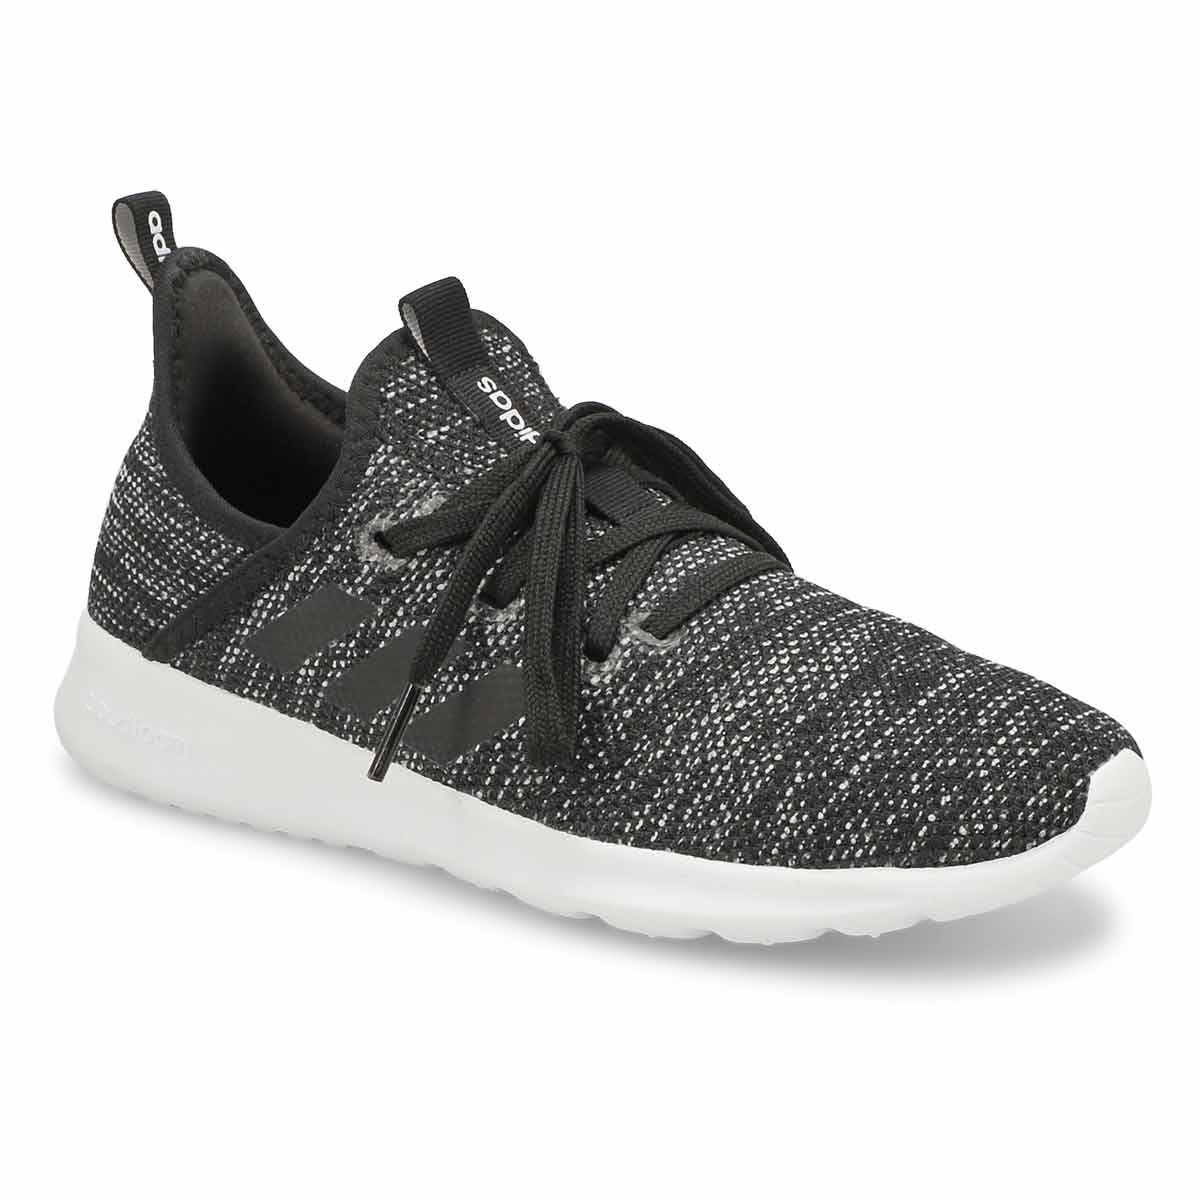 Women's CLOUDFAOM PURE black running shoes